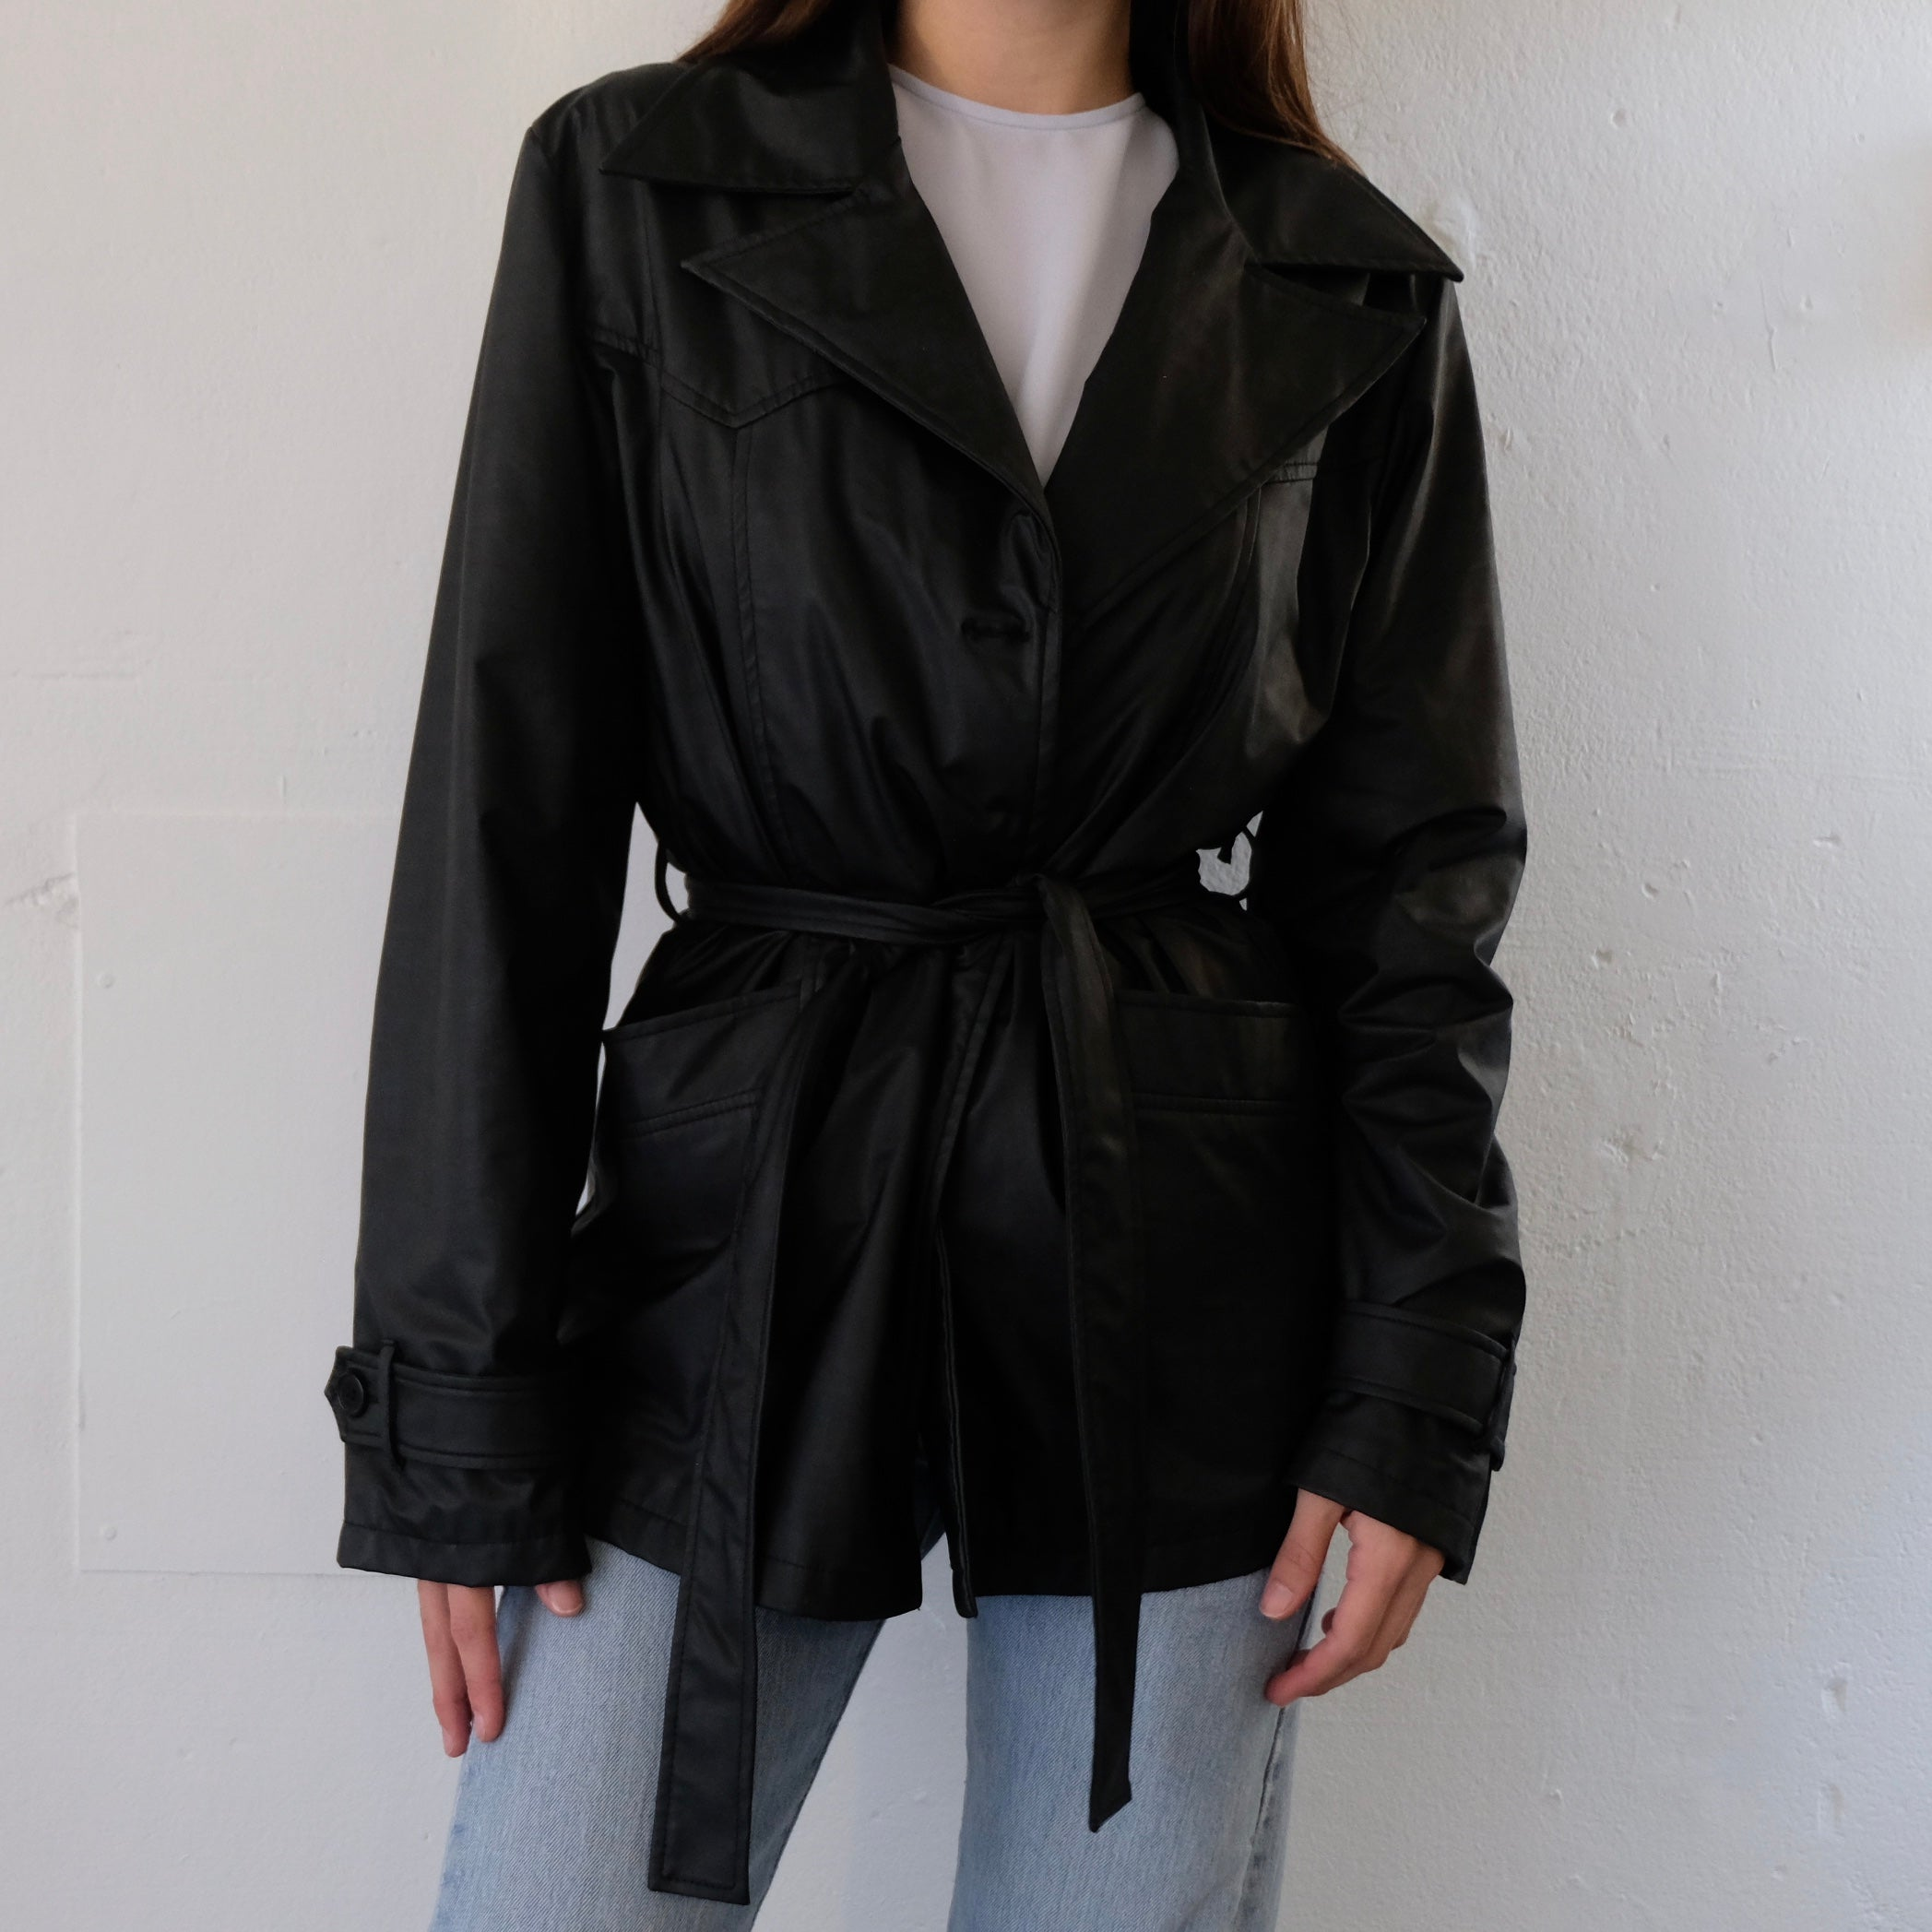 Belted Black Jacket